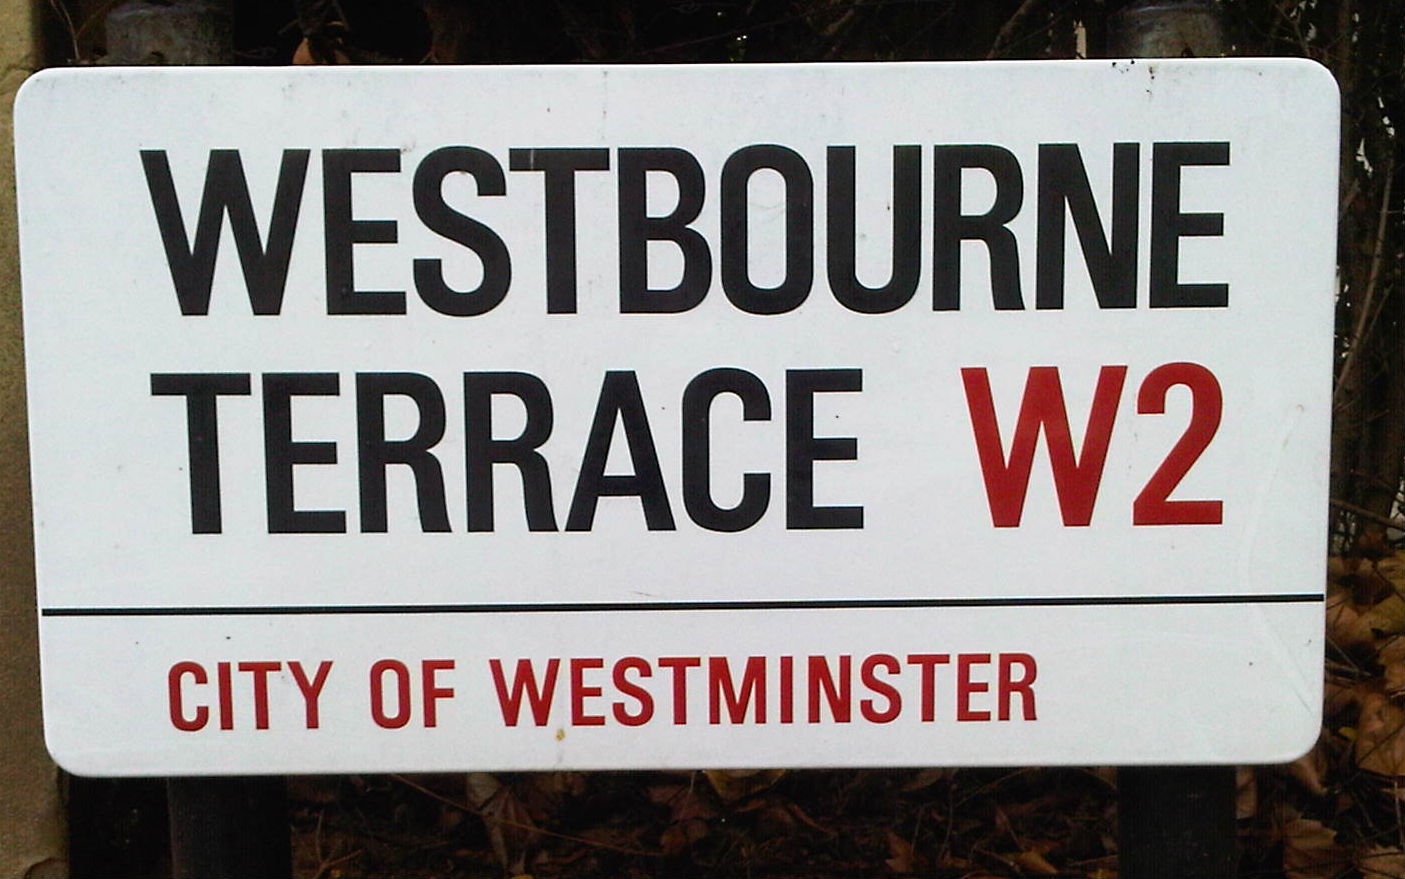 Westbourne Terrace, London W2